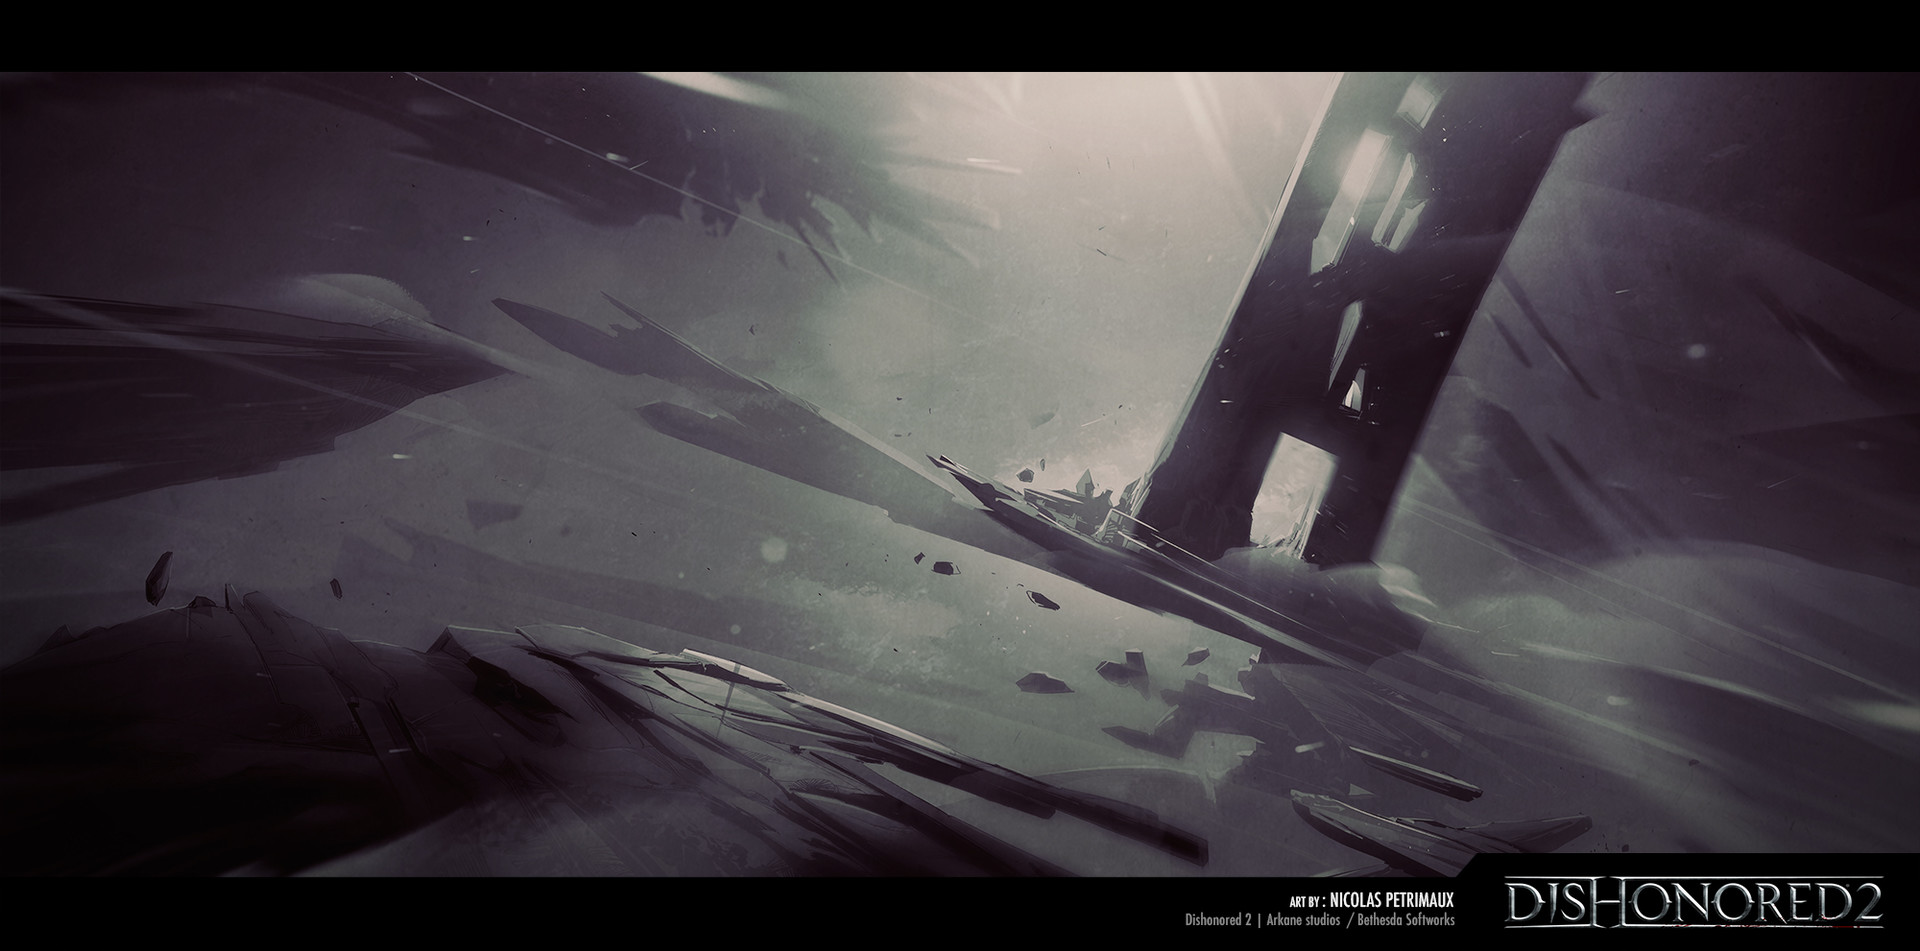 Nicolas petrimaux templatecredit dishonored2 void